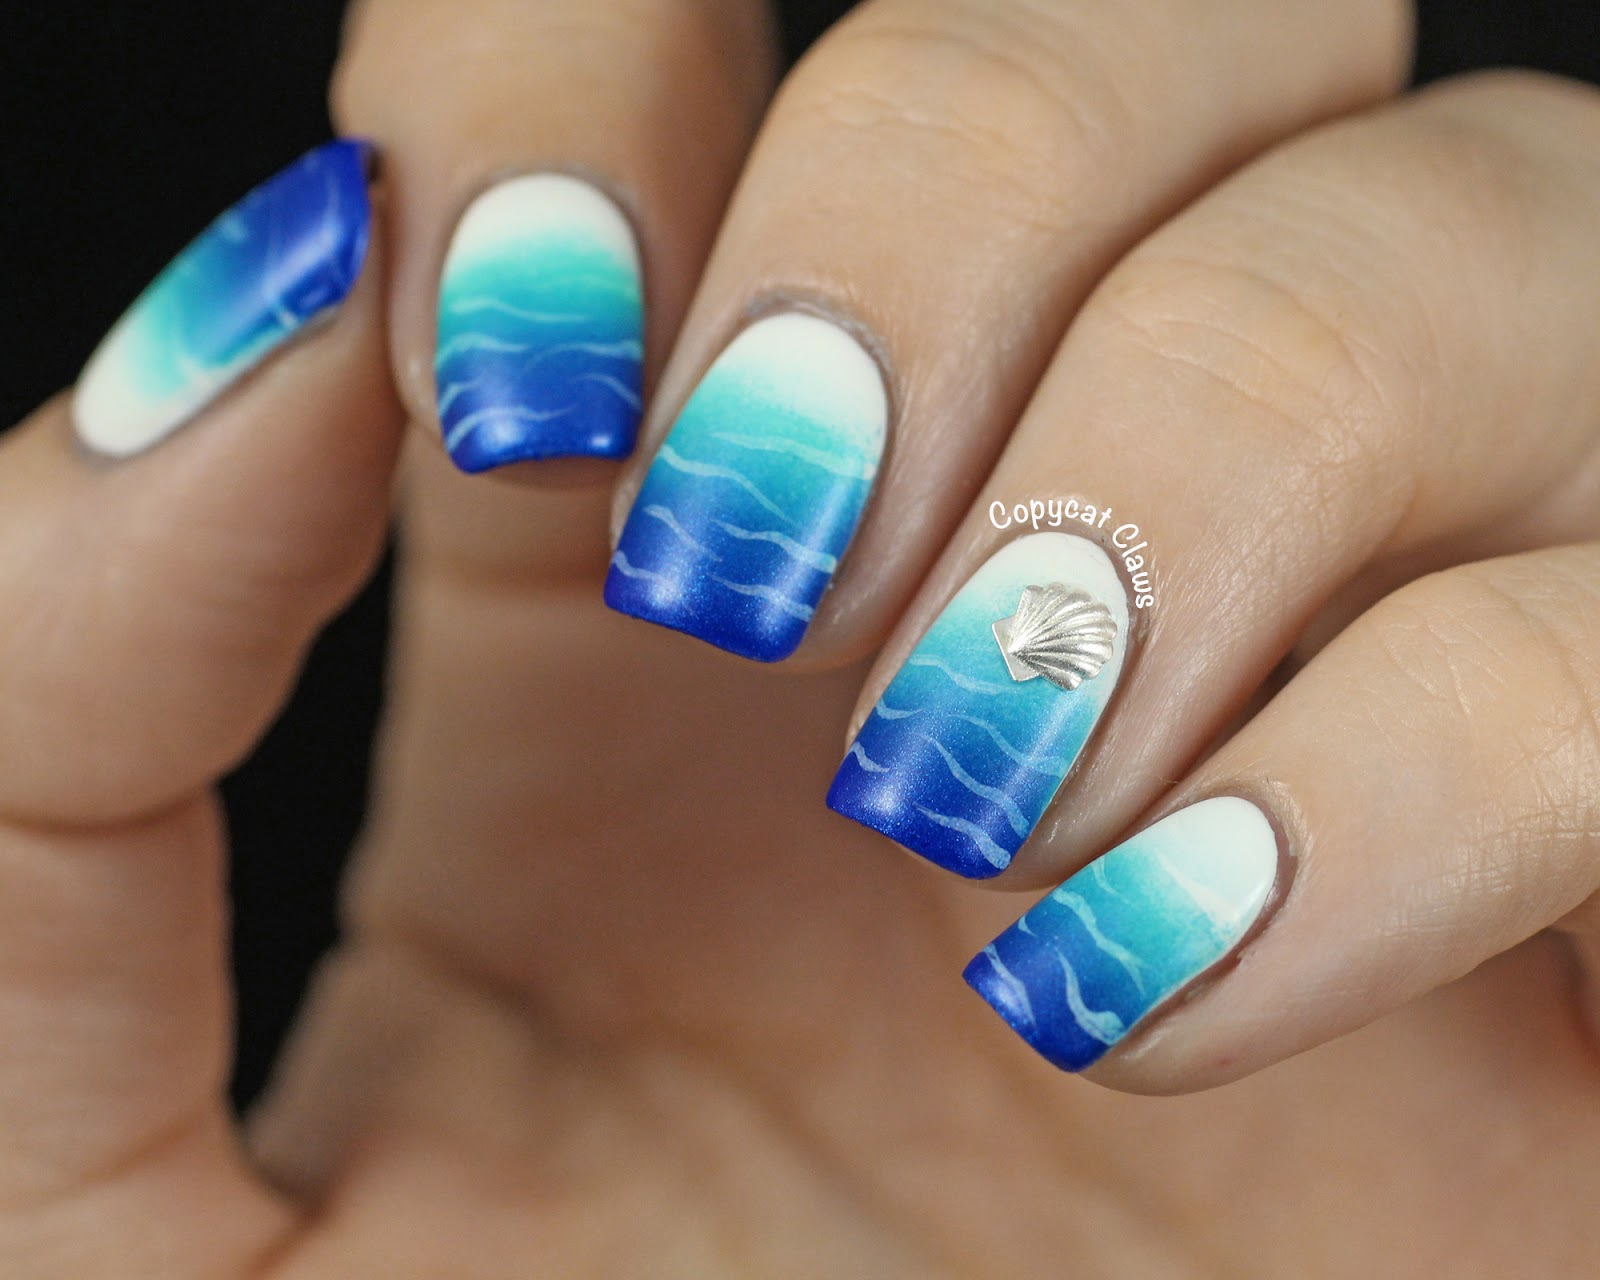 Water Nail Art: Copycat Claws: Beachy Blue-White Gradient Nails